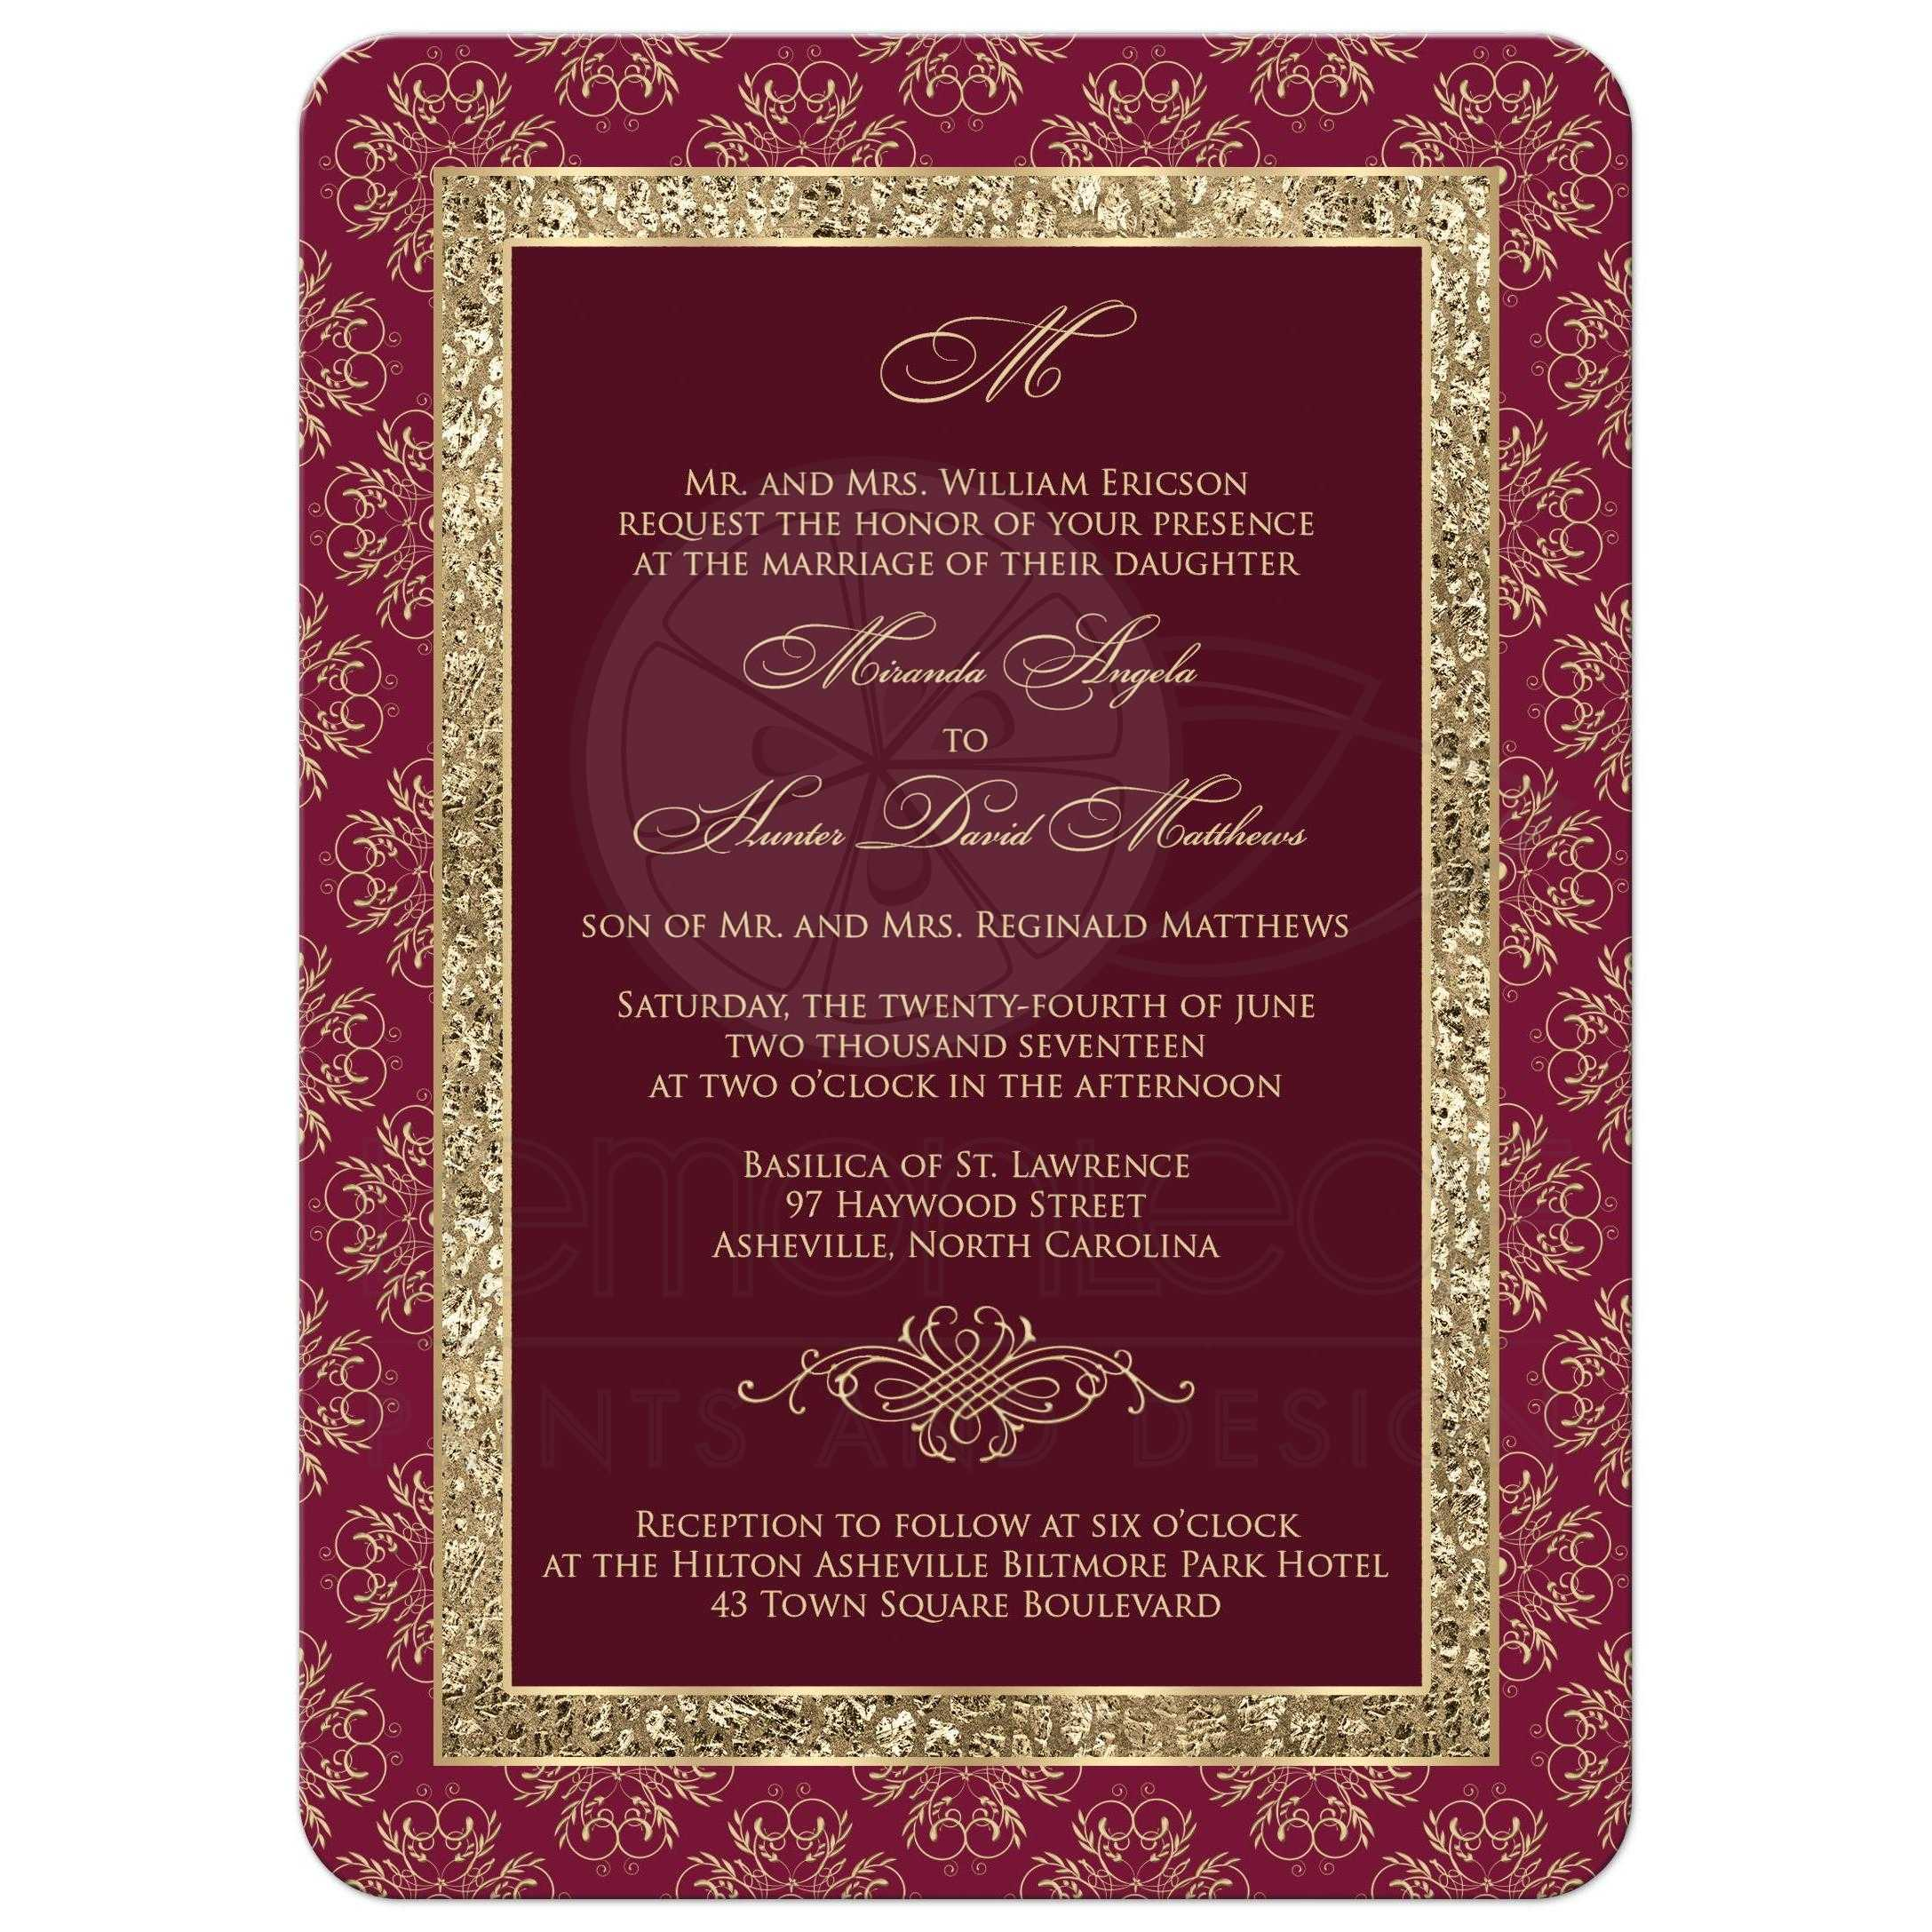 Formal Birthday Invitations is adorable invitation example